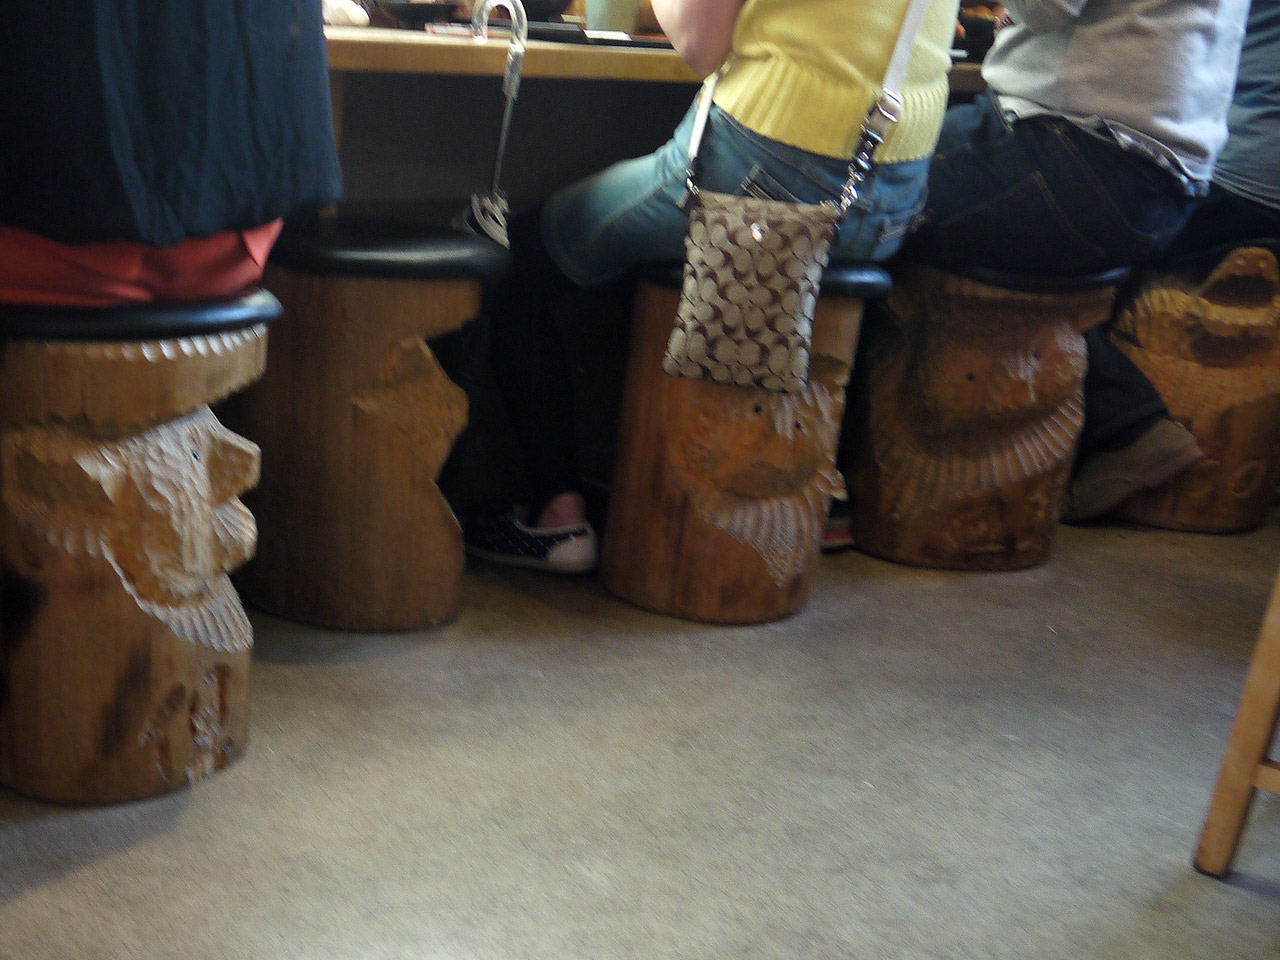 human butts on stools carved to look like bears